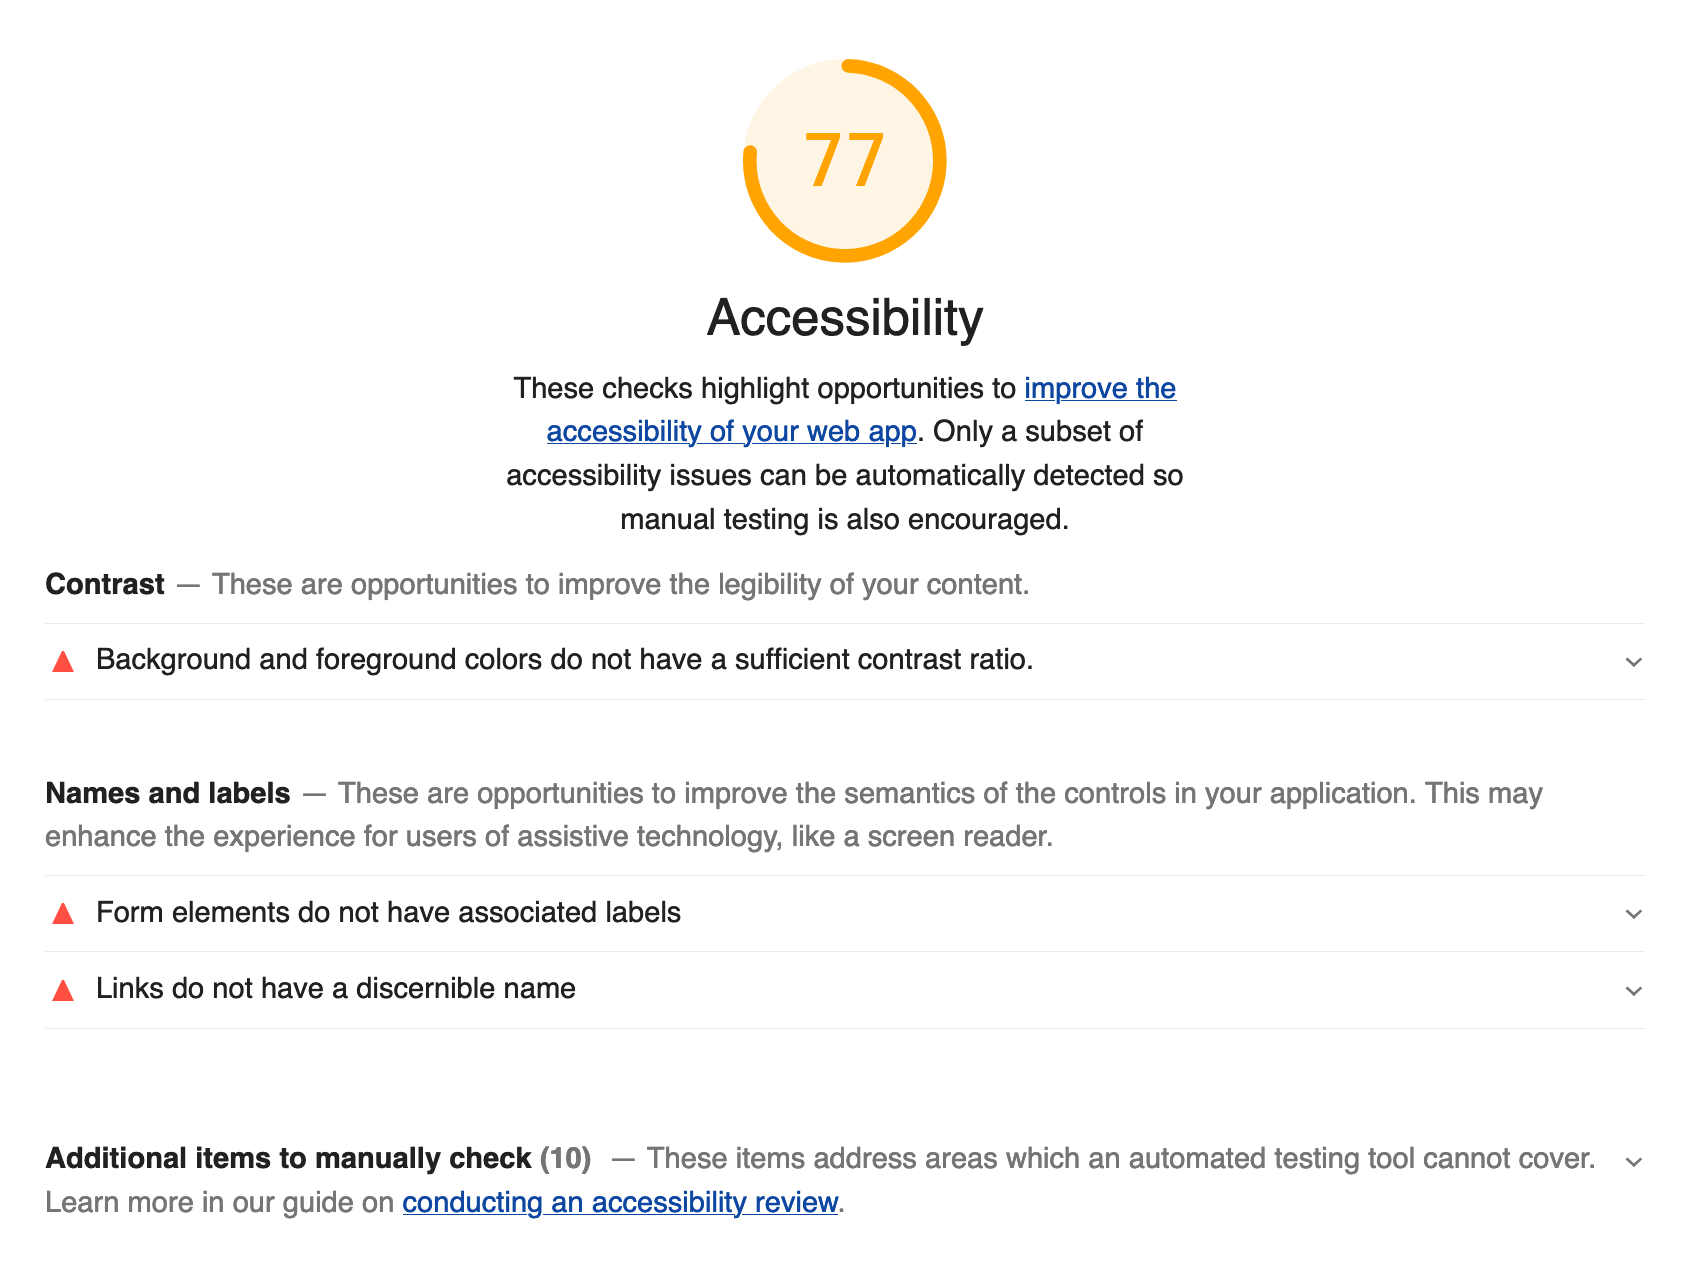 Accessibility report highlighting issues